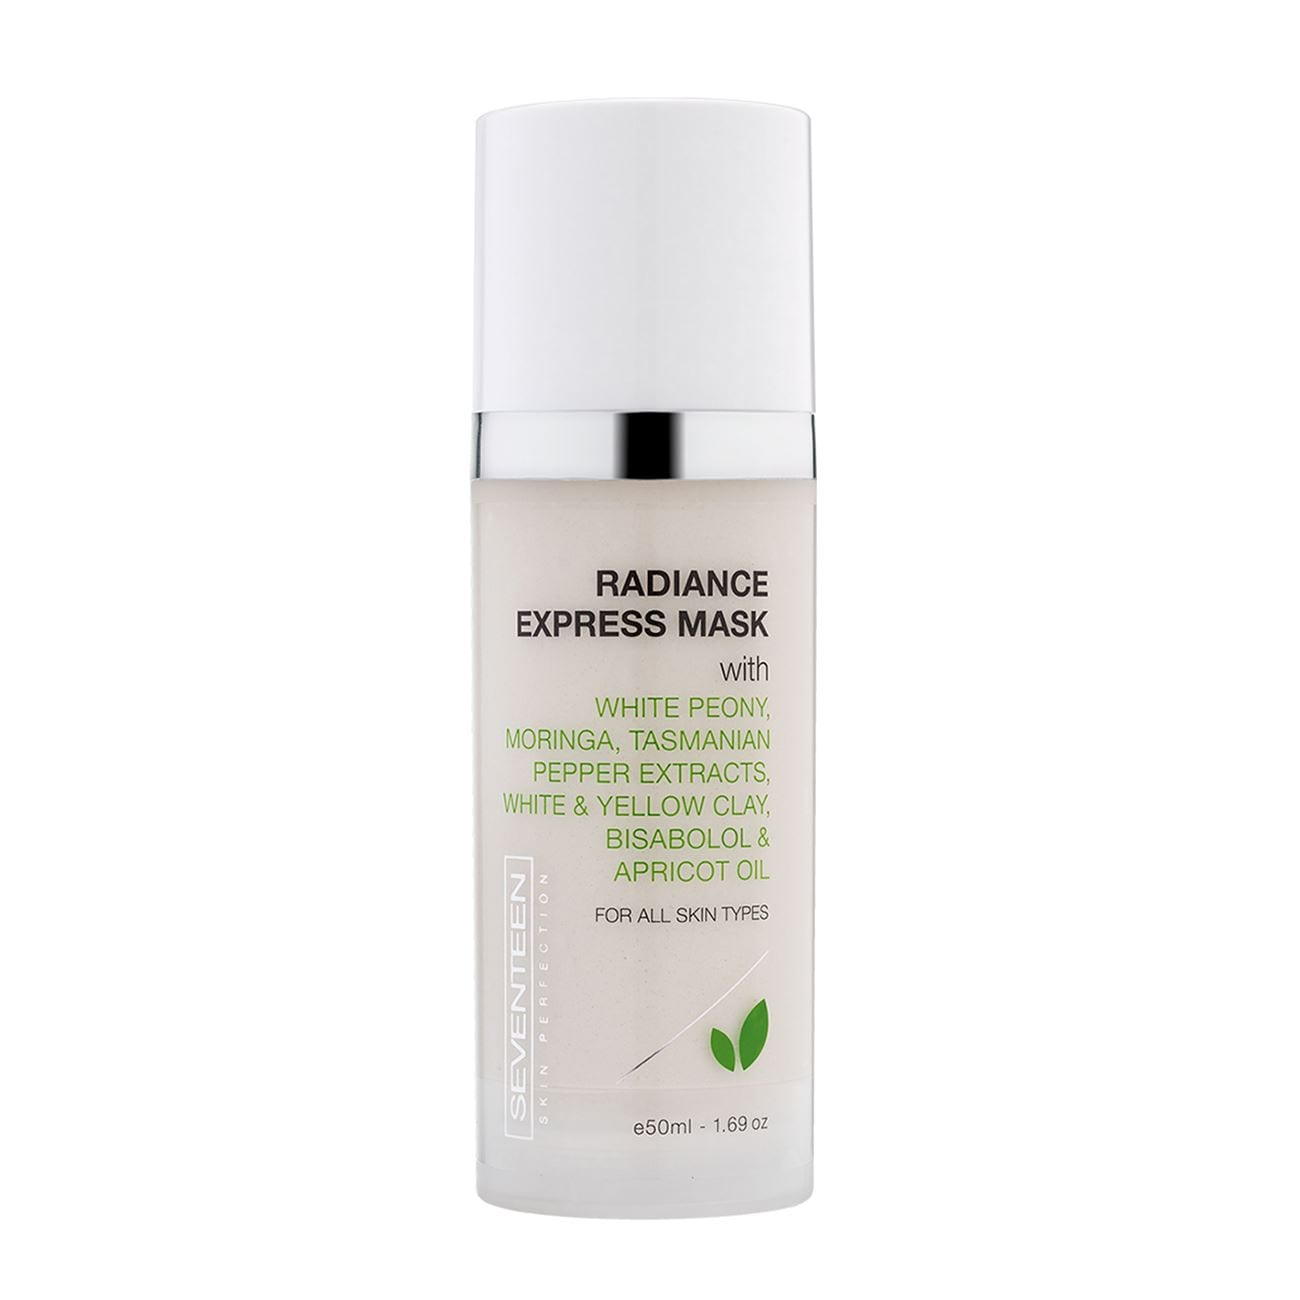 Radiance Express Mask